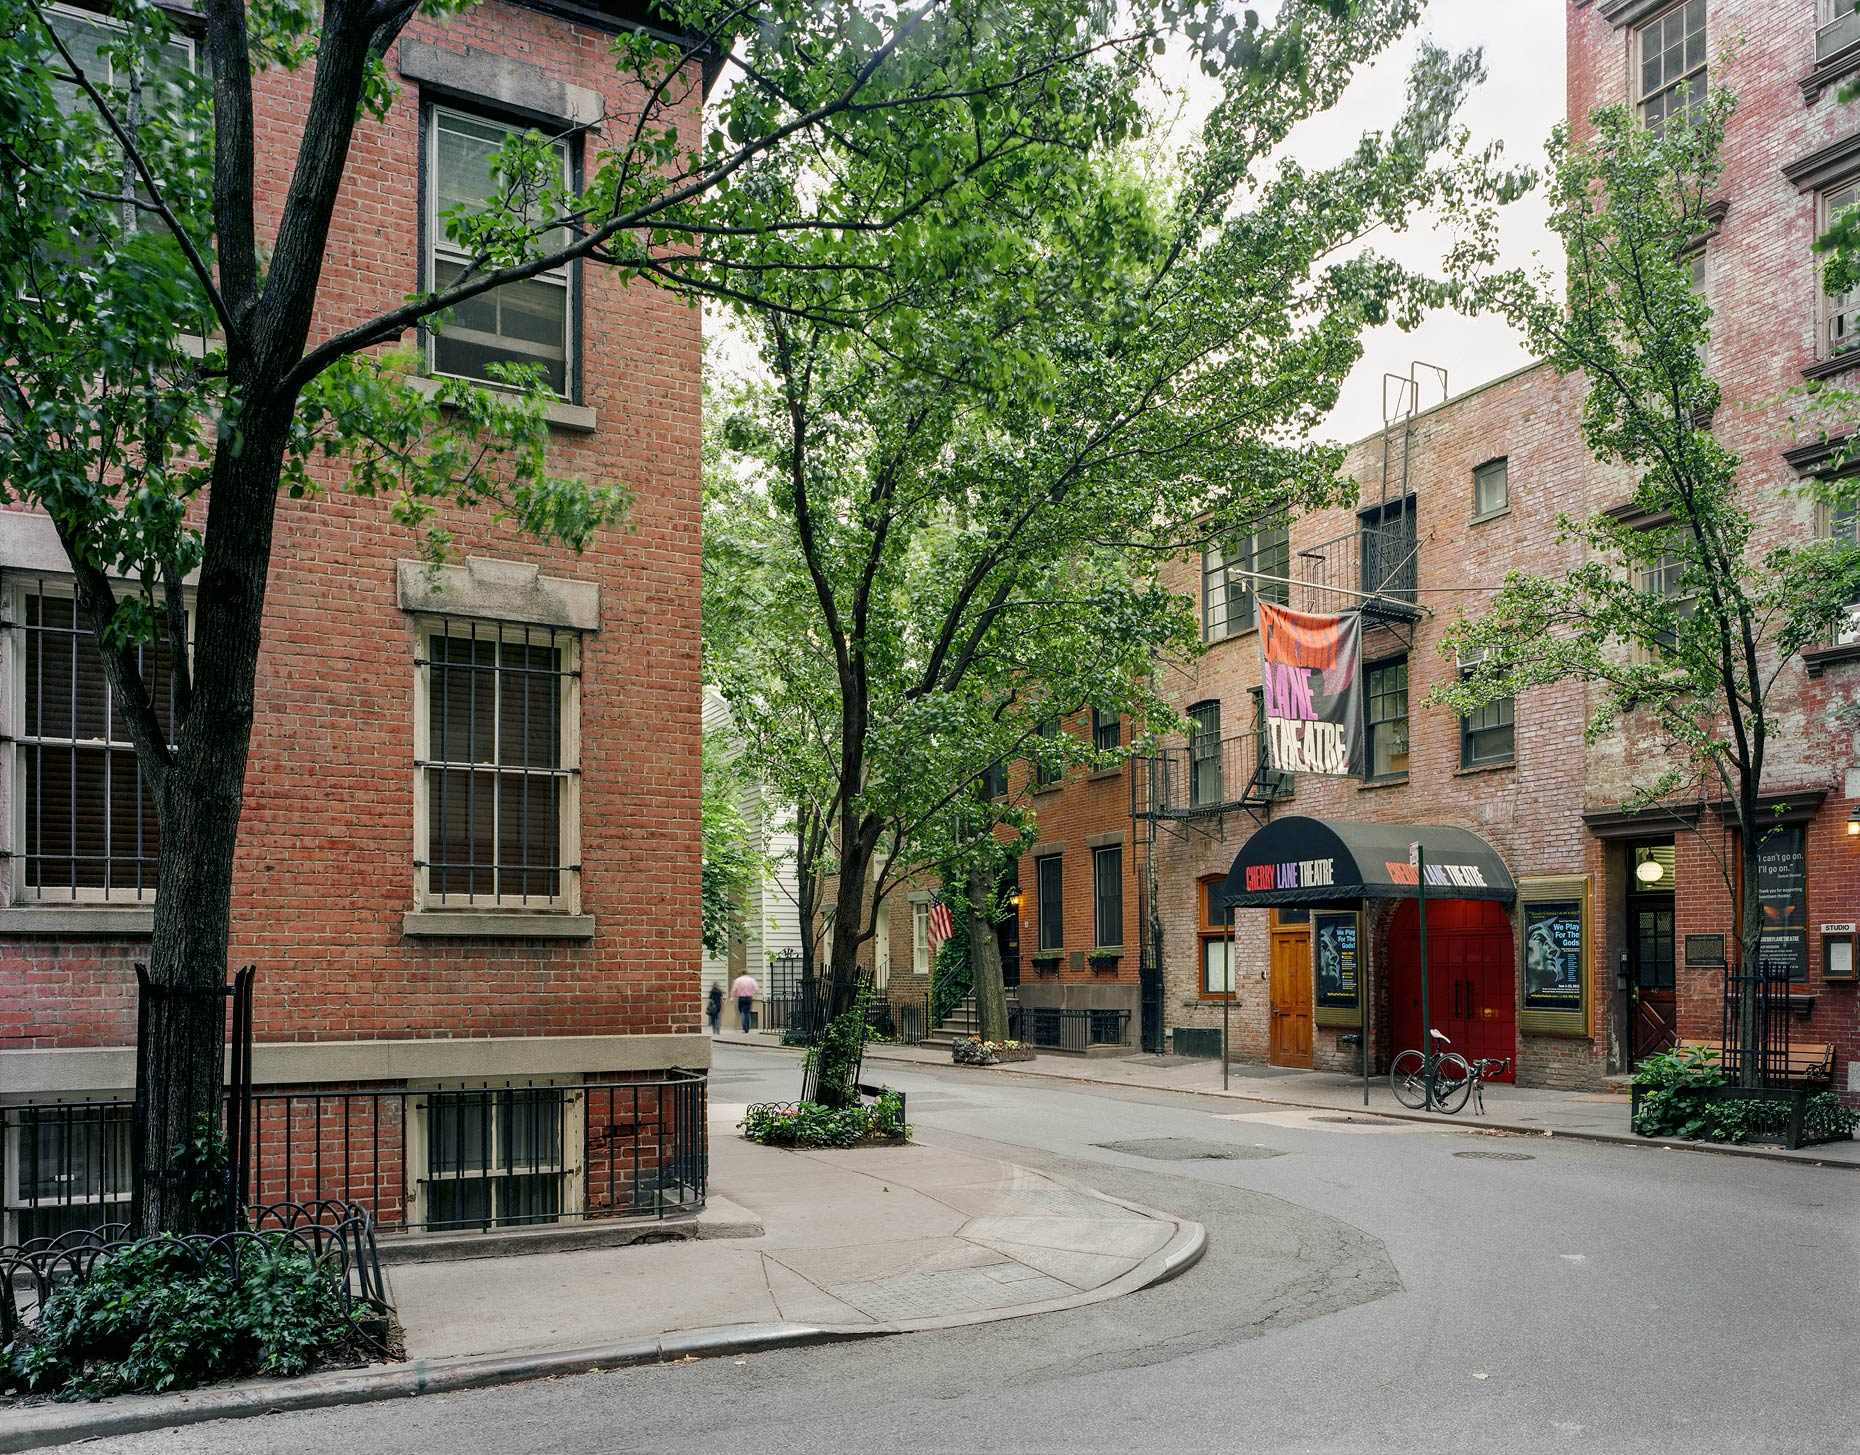 Cherry Lane Theatre, 38 Commerce Street, West Village, New York